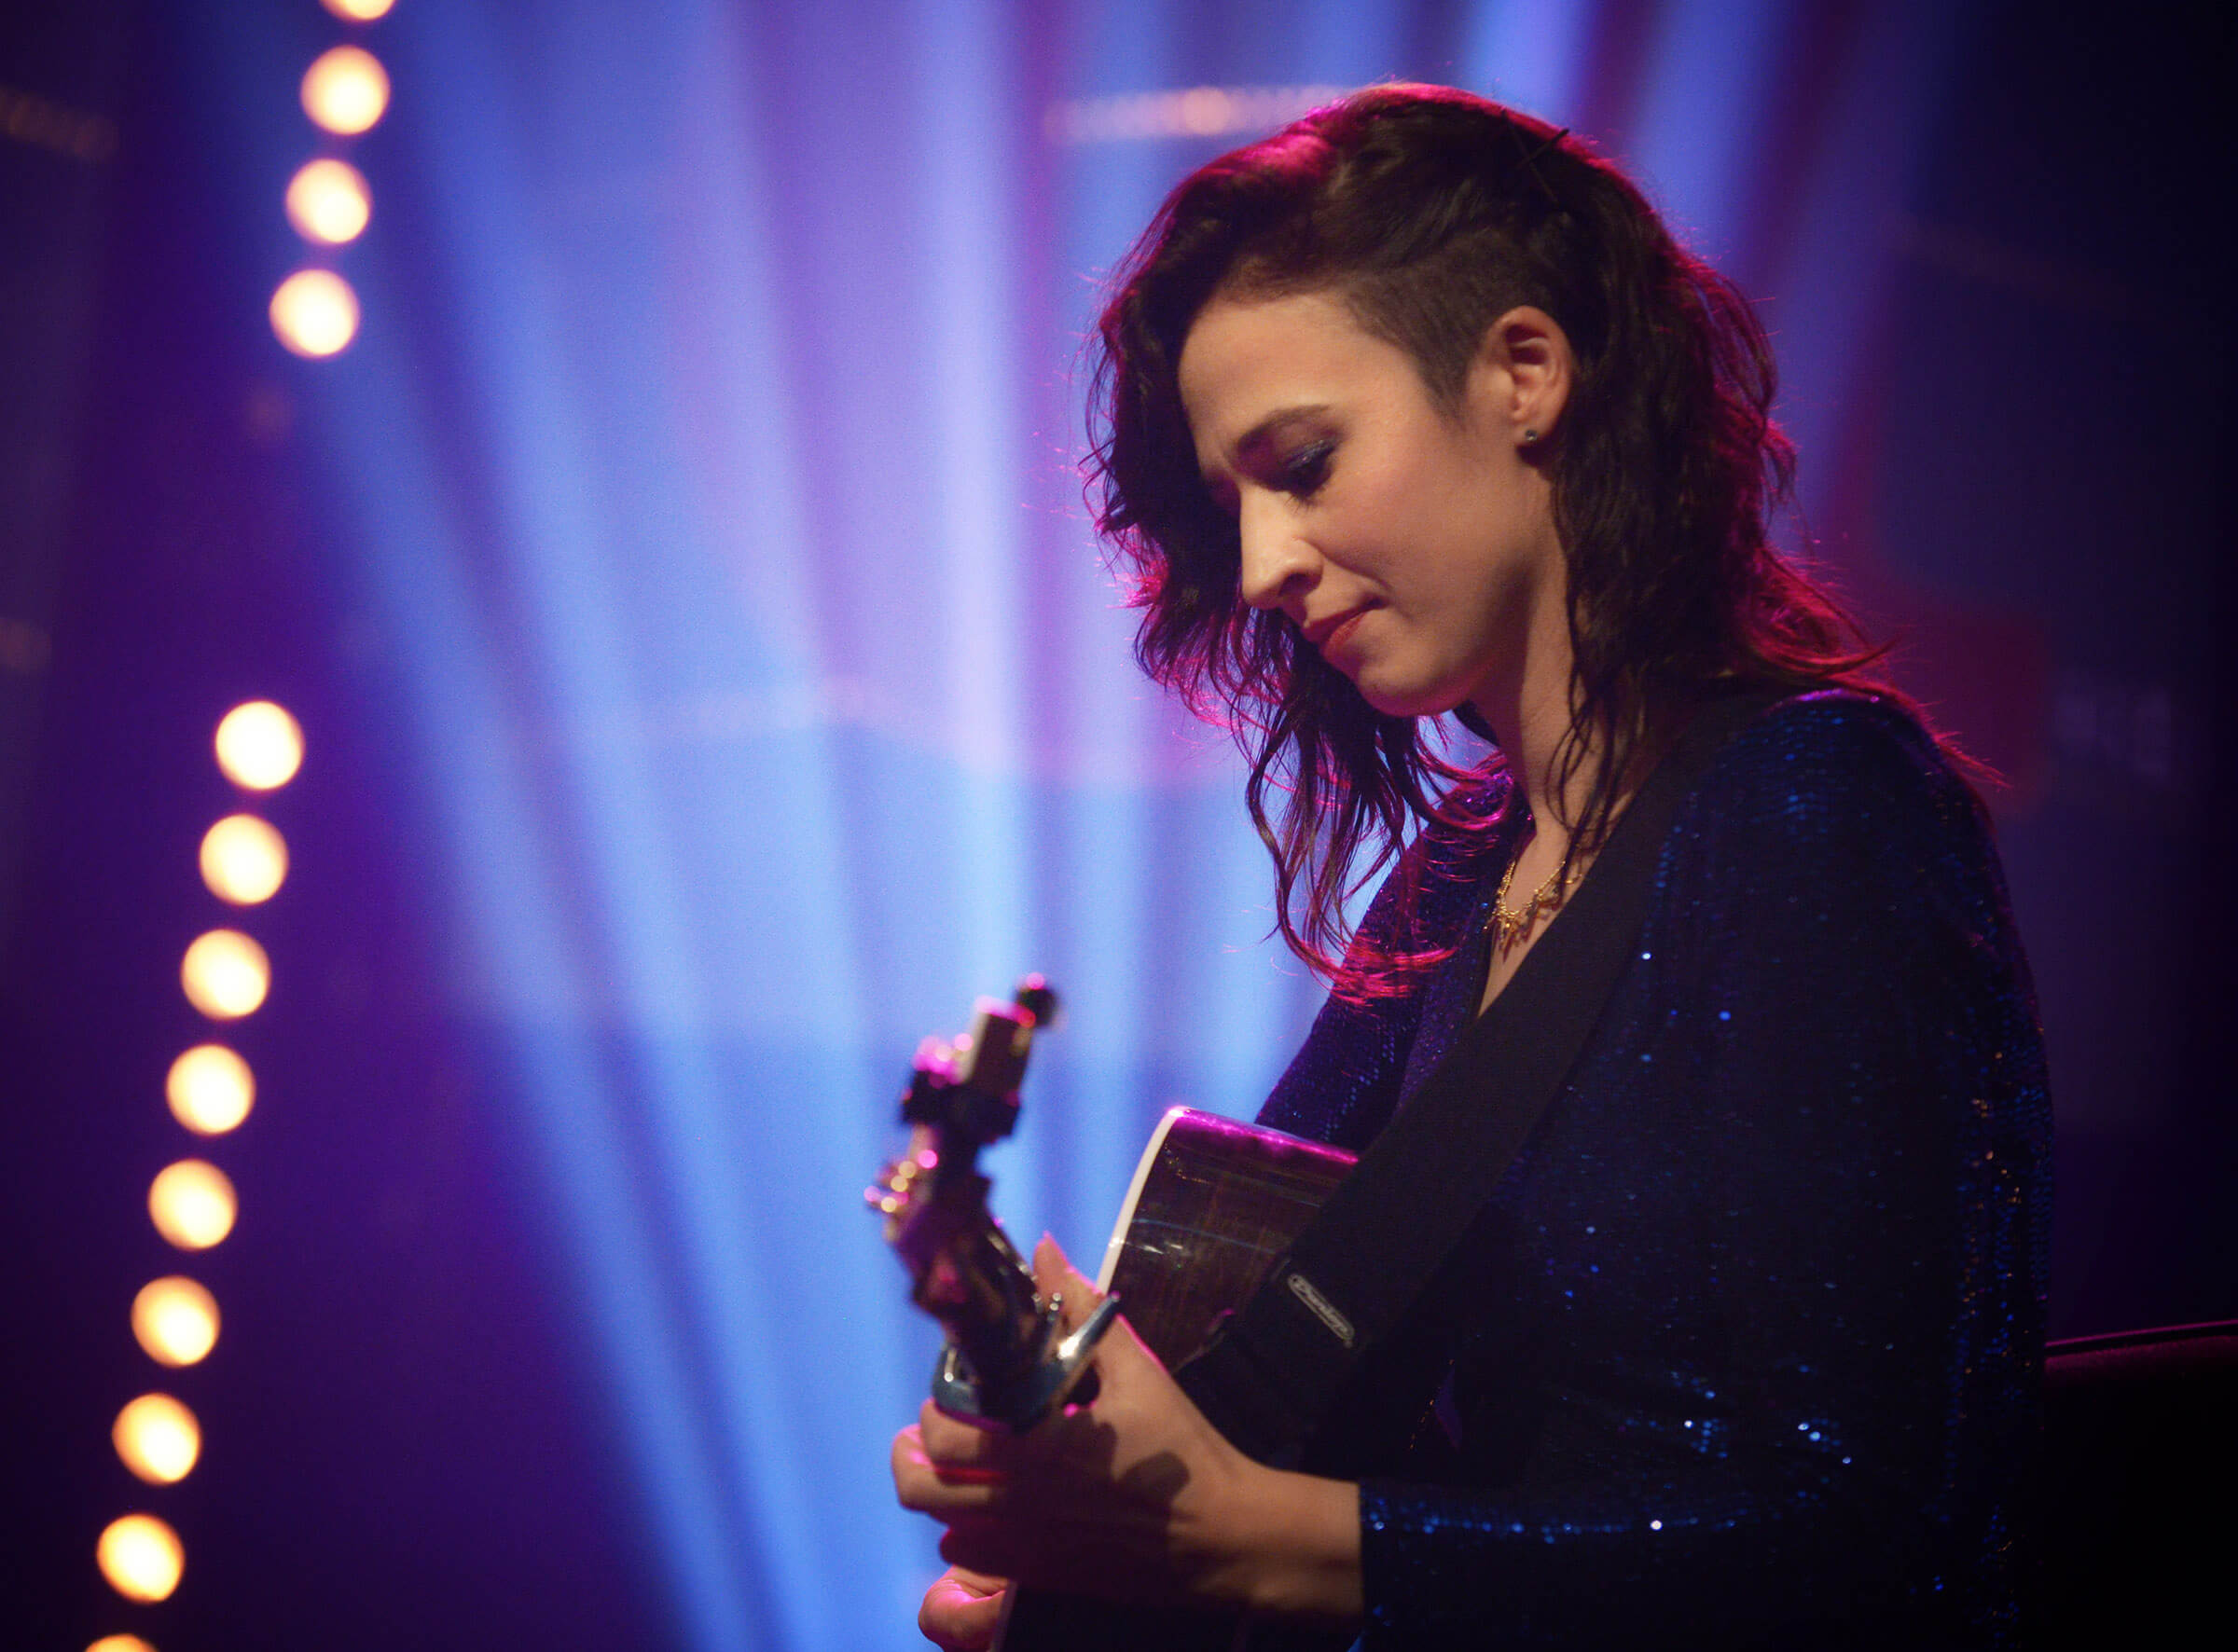 Folk guitarist Jenn Butterworth plays the guitar on stage in front of a purple stage light